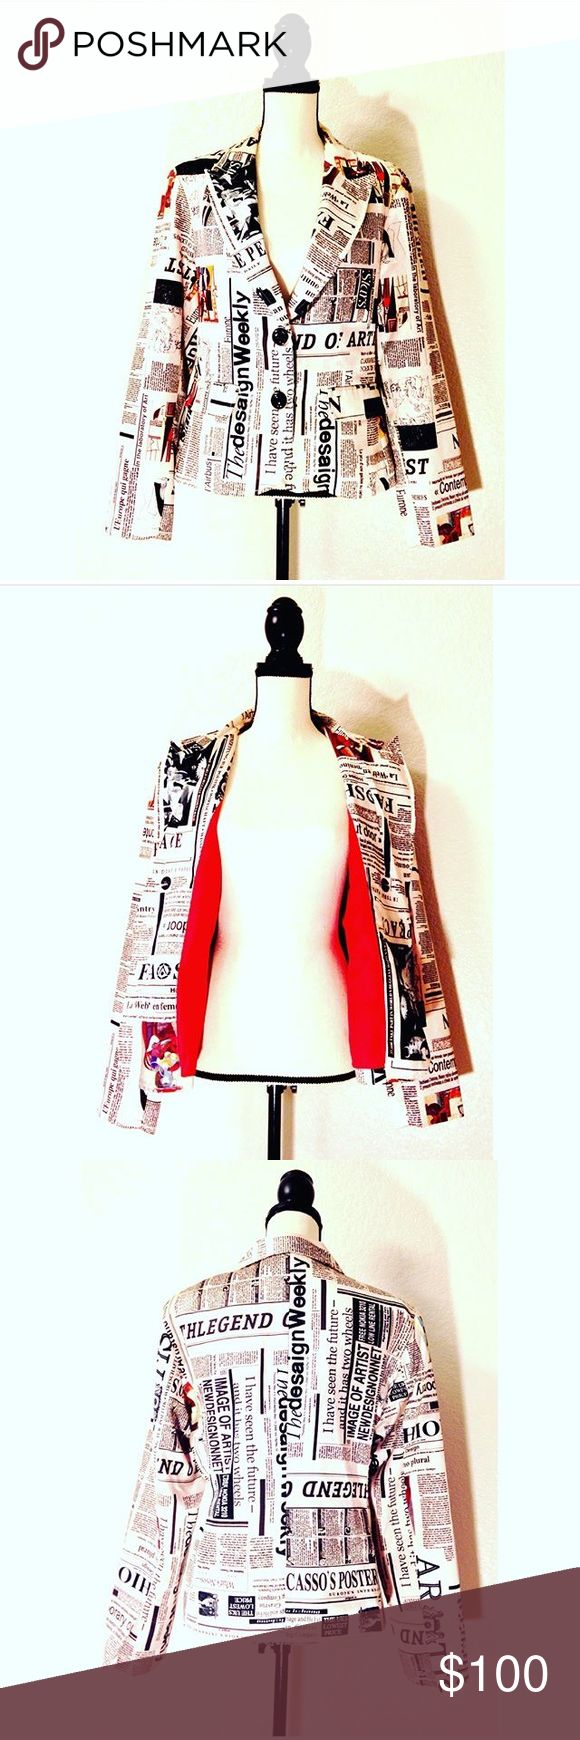 """New York Newspaper Jacket This New York Jacket is one of a kind! It's fabric is embroidered with newspaper print and different """"hot off the press"""" stories! The inside lining is bright red, making wearing the jacket open just as fashionable. In wonderful shape as it was found just for you in a designer store in NewYork City near Chealsea's Market! Make an offer ; ) Jackets & Coats"""